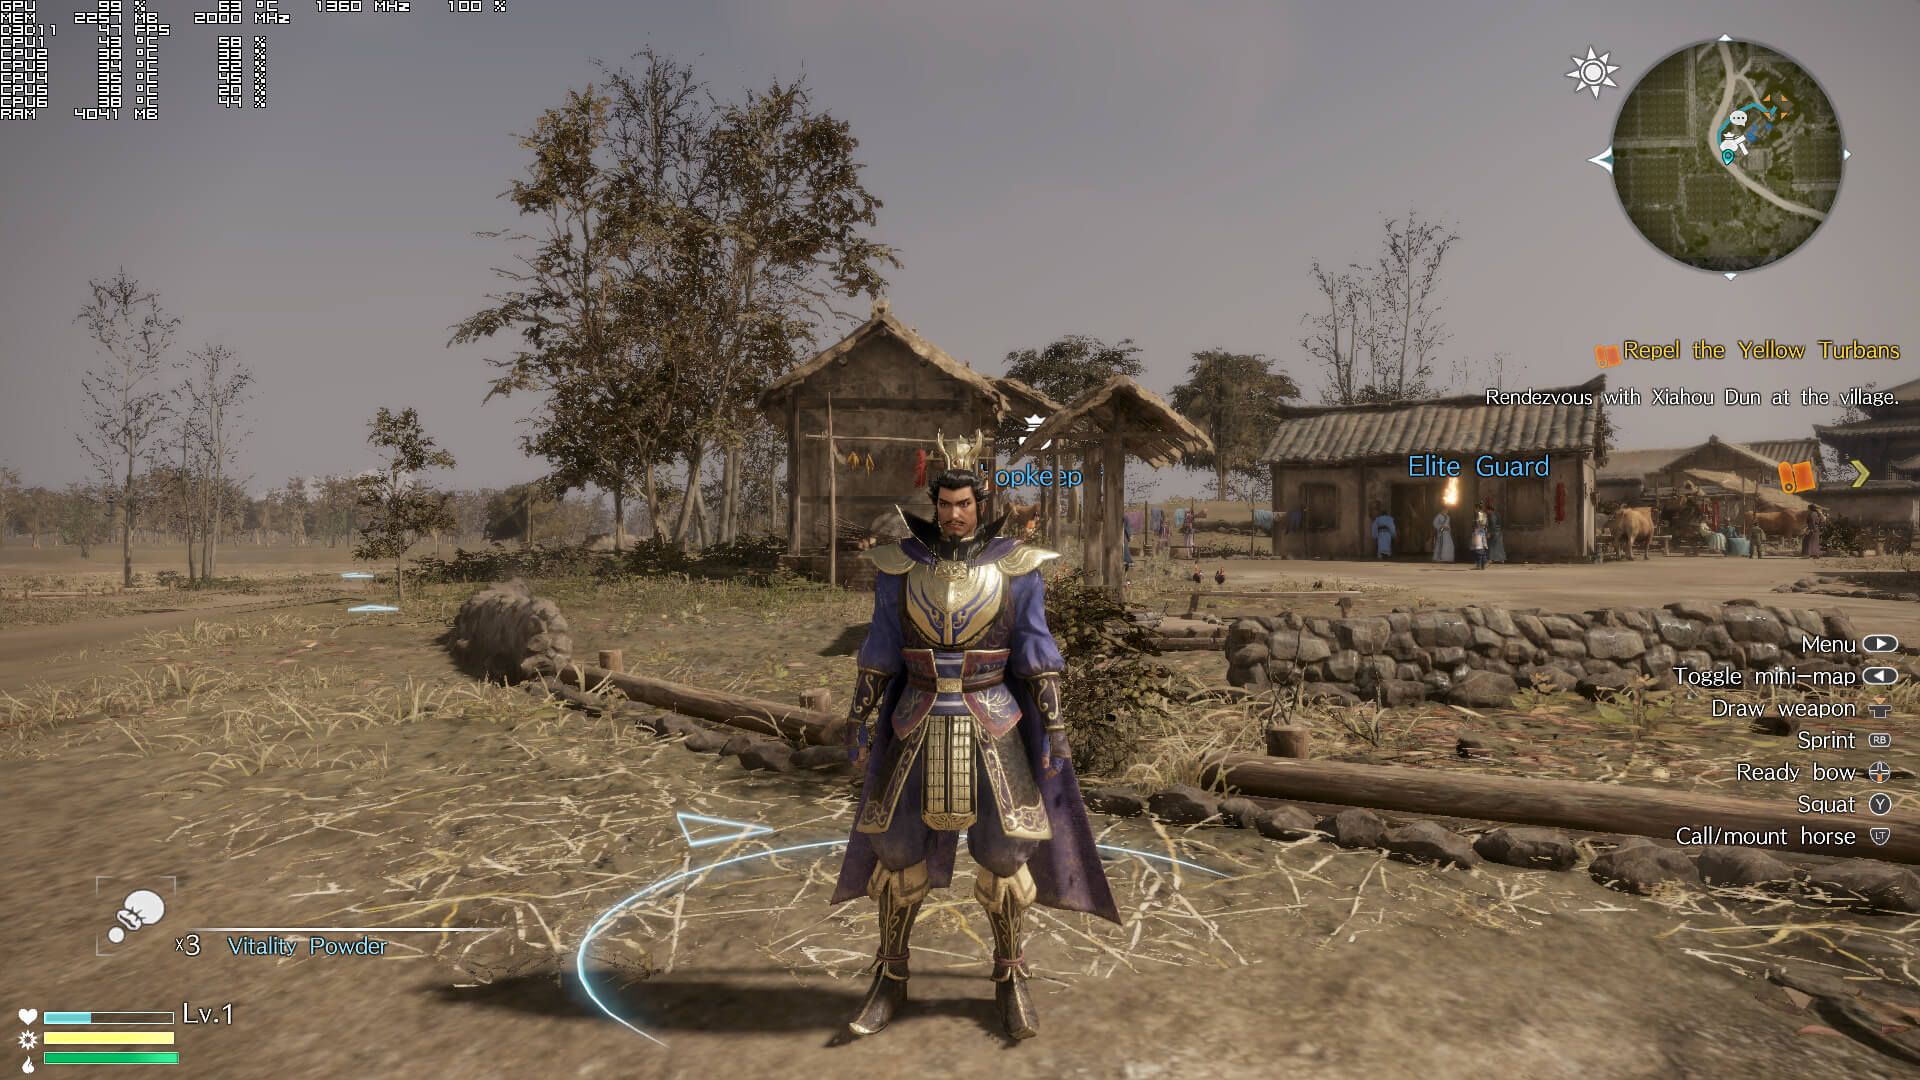 Dynasty Warriors 9 Update 1.03 Improves PS4 Framerate